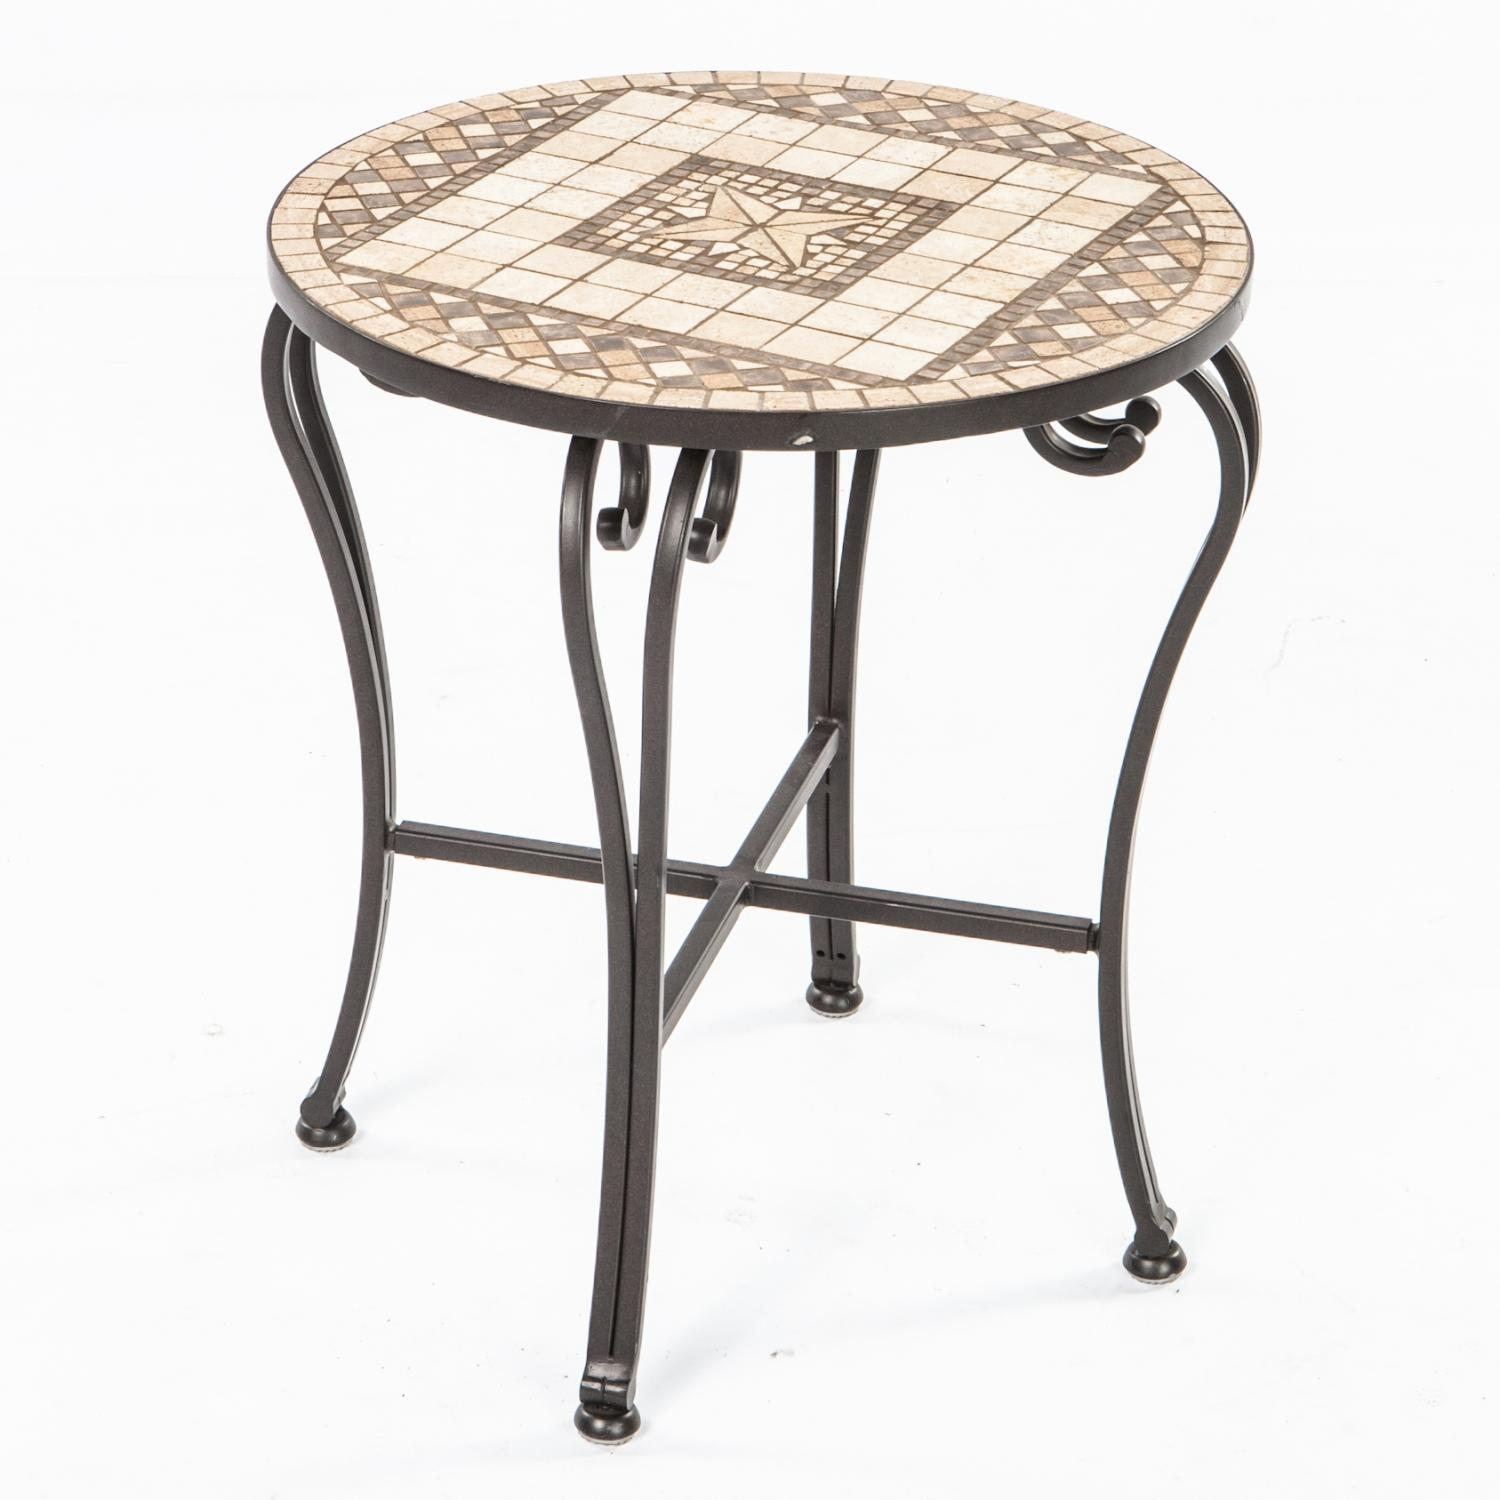 Alfresco Home Basilica Mosaic Side Table at Sears.com